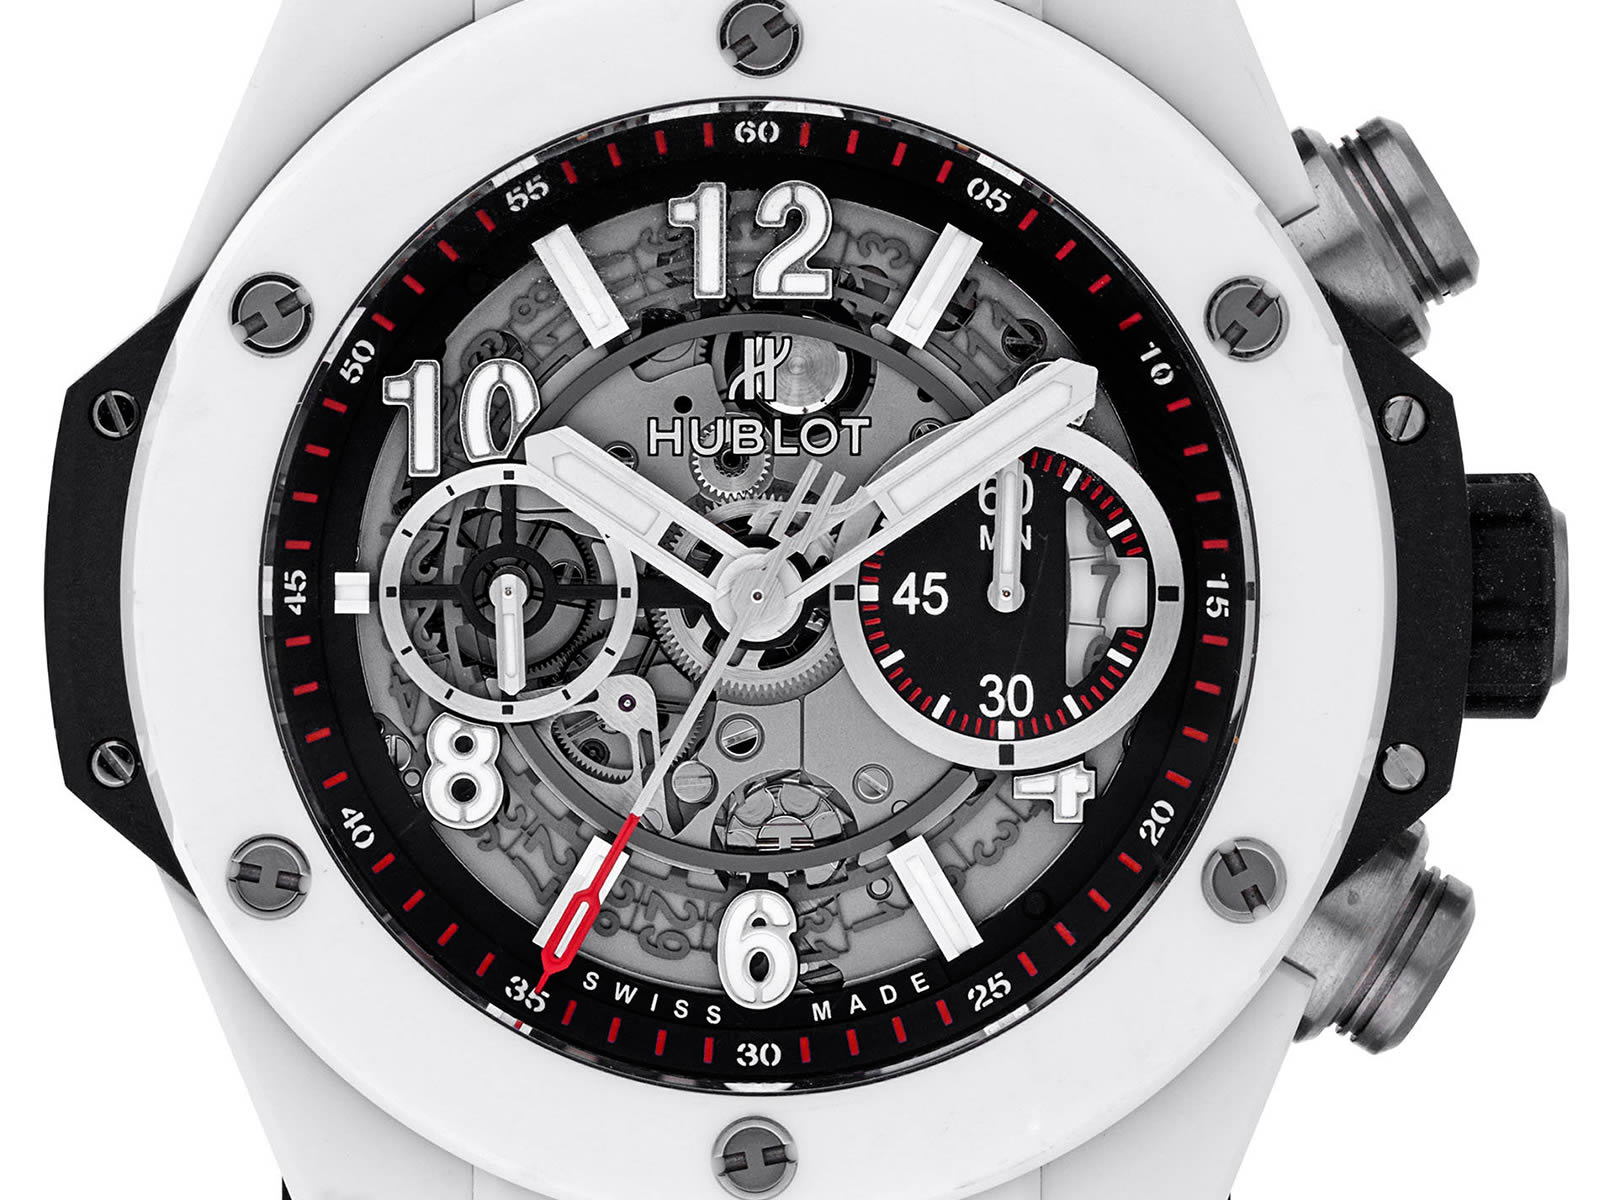 411-hx-1170-rx-hublot-big-bang-unico-white-ceramic-2-.jpg